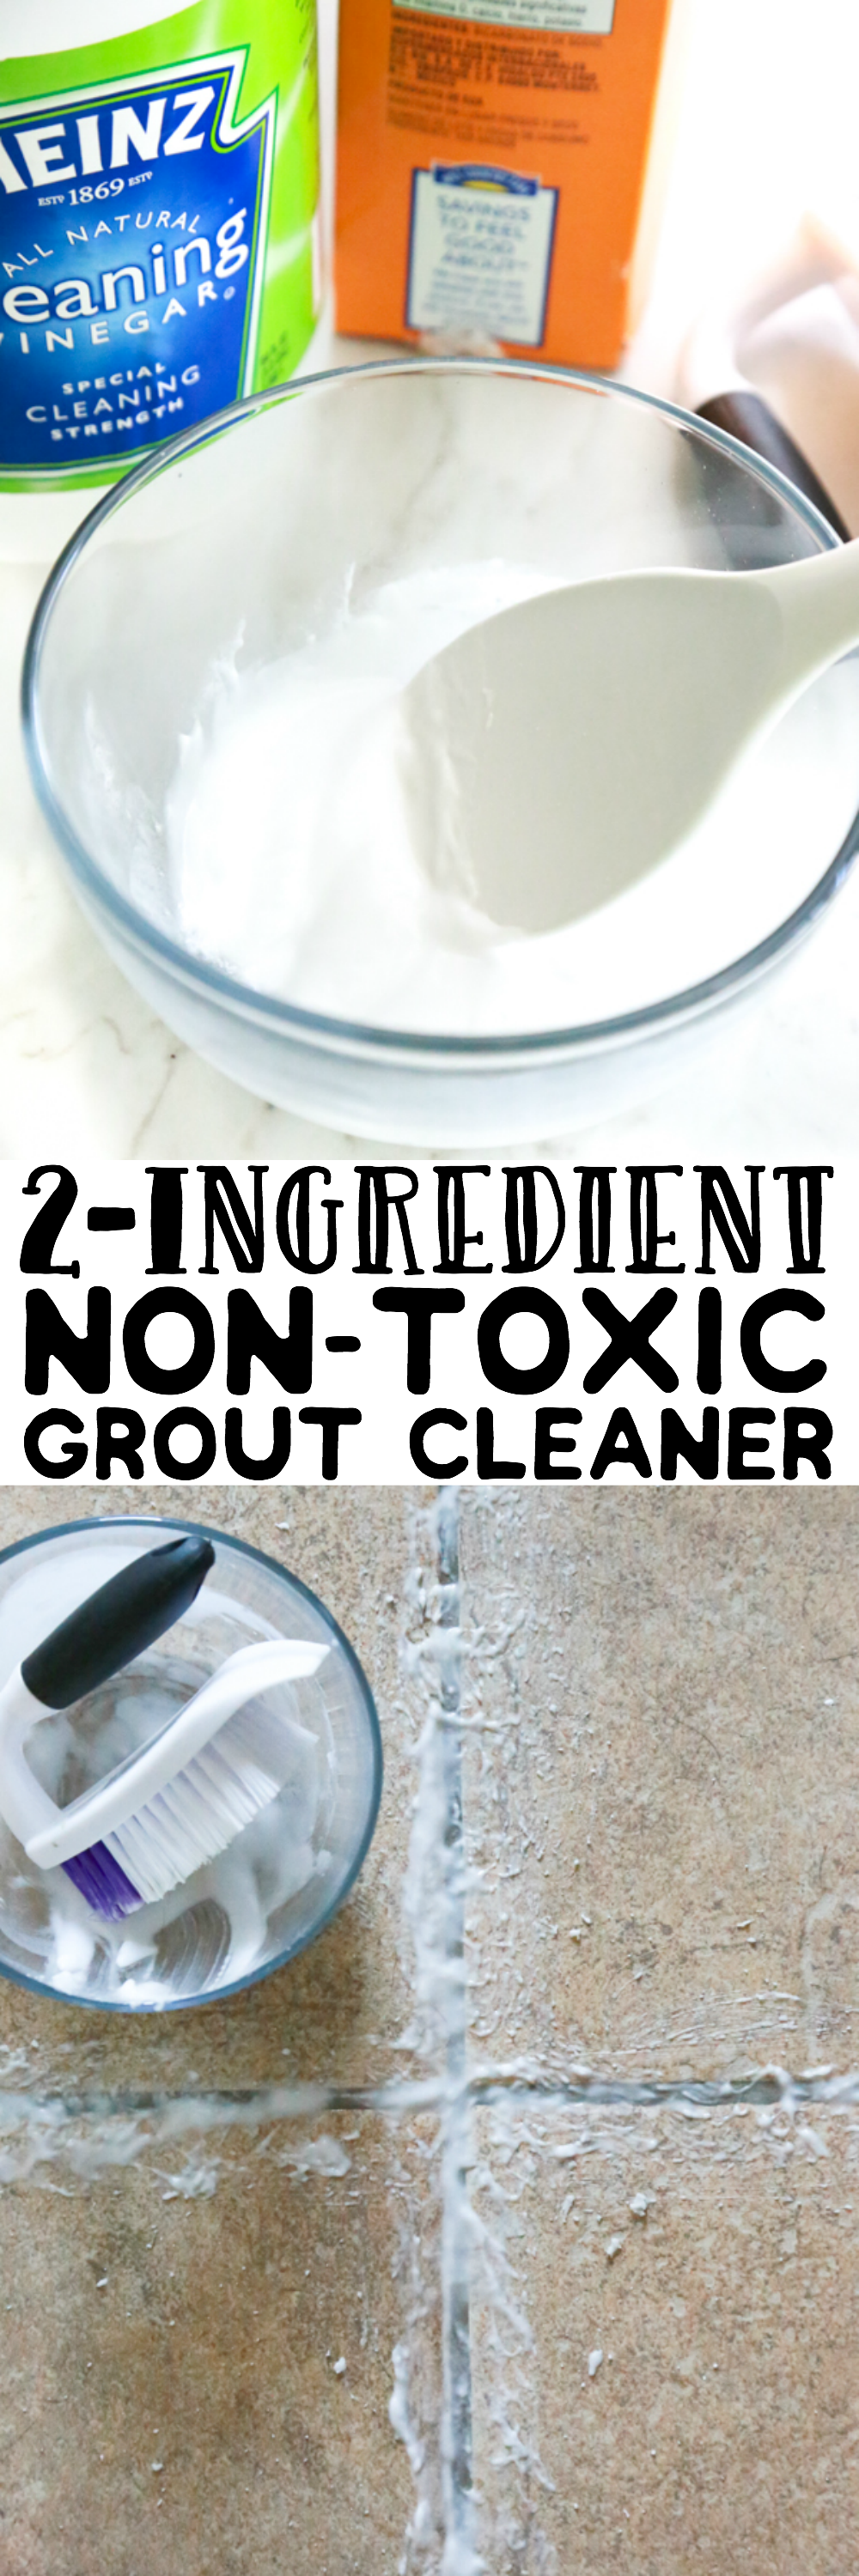 If your tile grout is in need of good deep-cleaning, try this Homemade 2-Ingredient Non-Toxic Grout Cleaner for an all-natural clean.